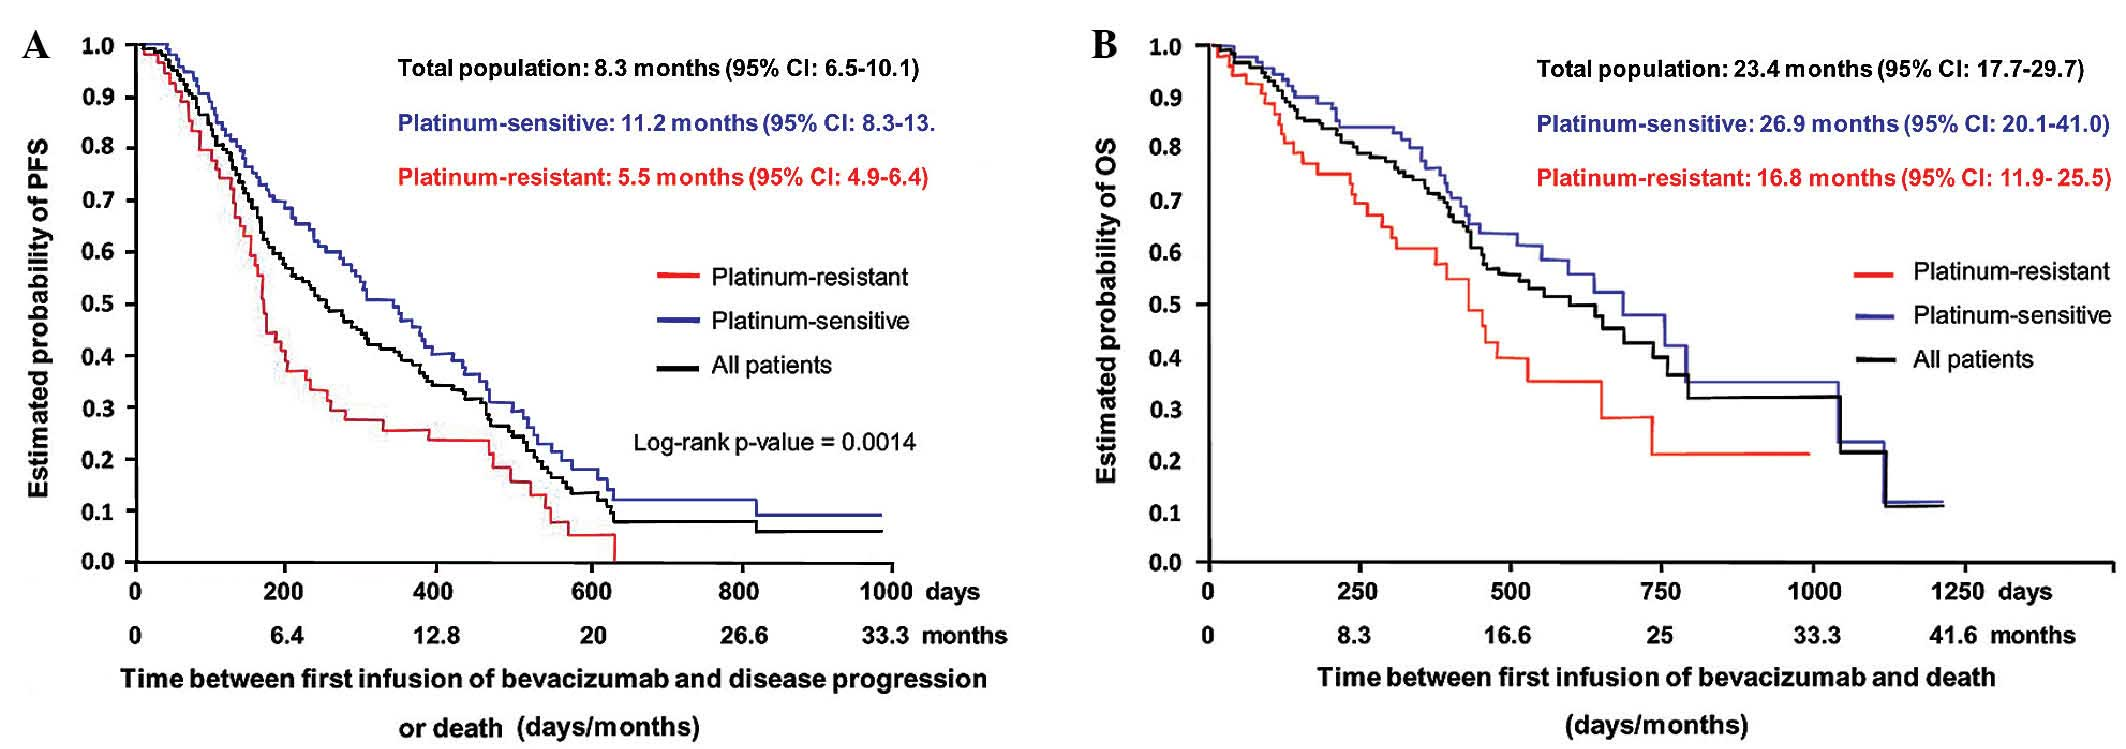 Safety Of Bevacizumab In Clinical Practice For Recurrent Ovarian Cancer A Retrospective Cohort Study